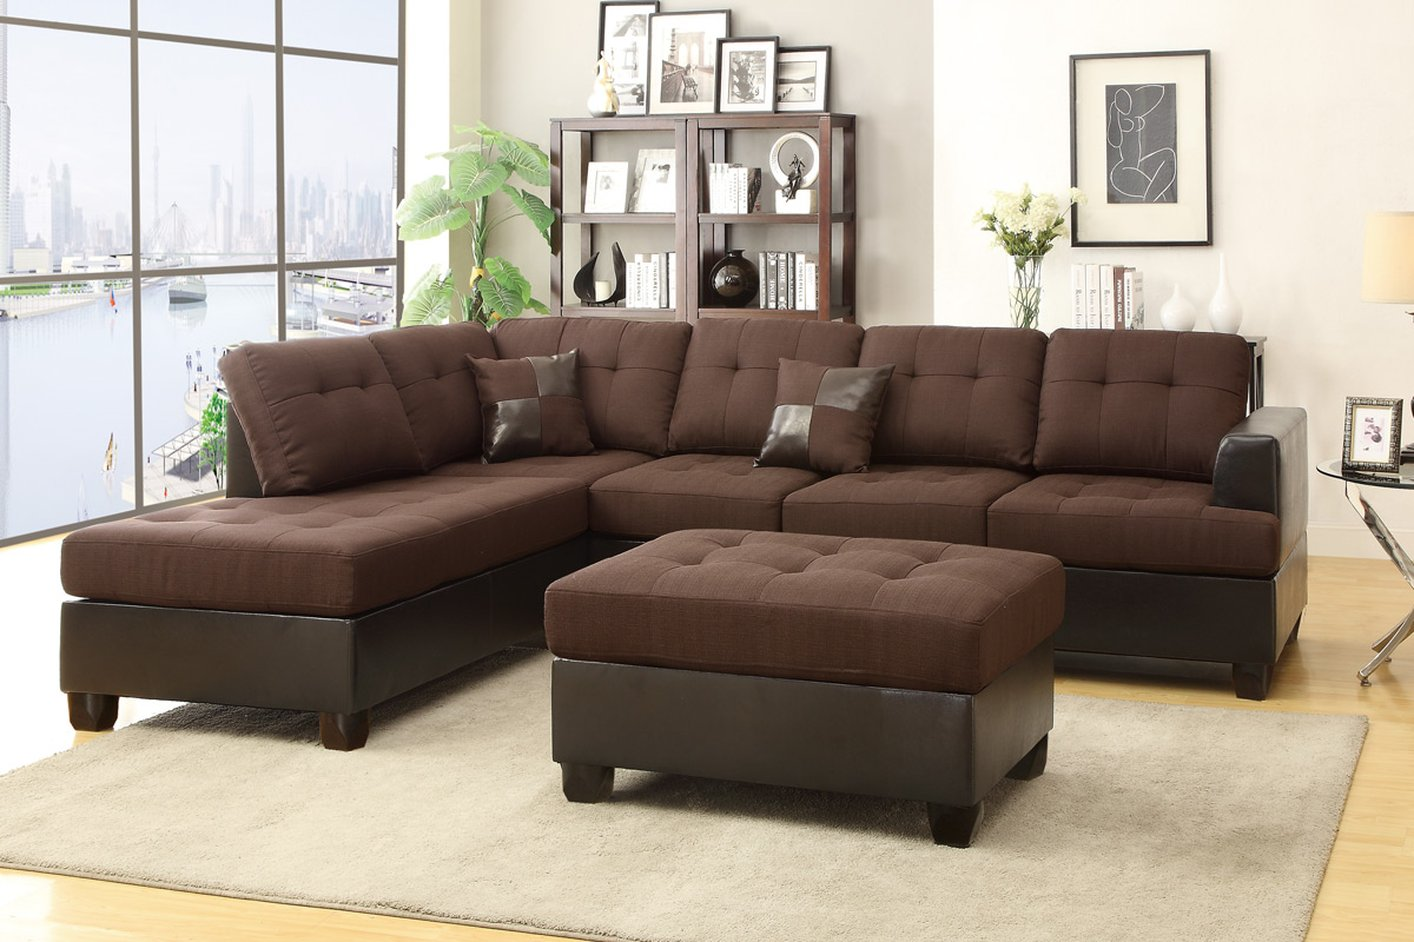 sofa and ottoman 4 seater throws poundex moss f7602 brown fabric sectional